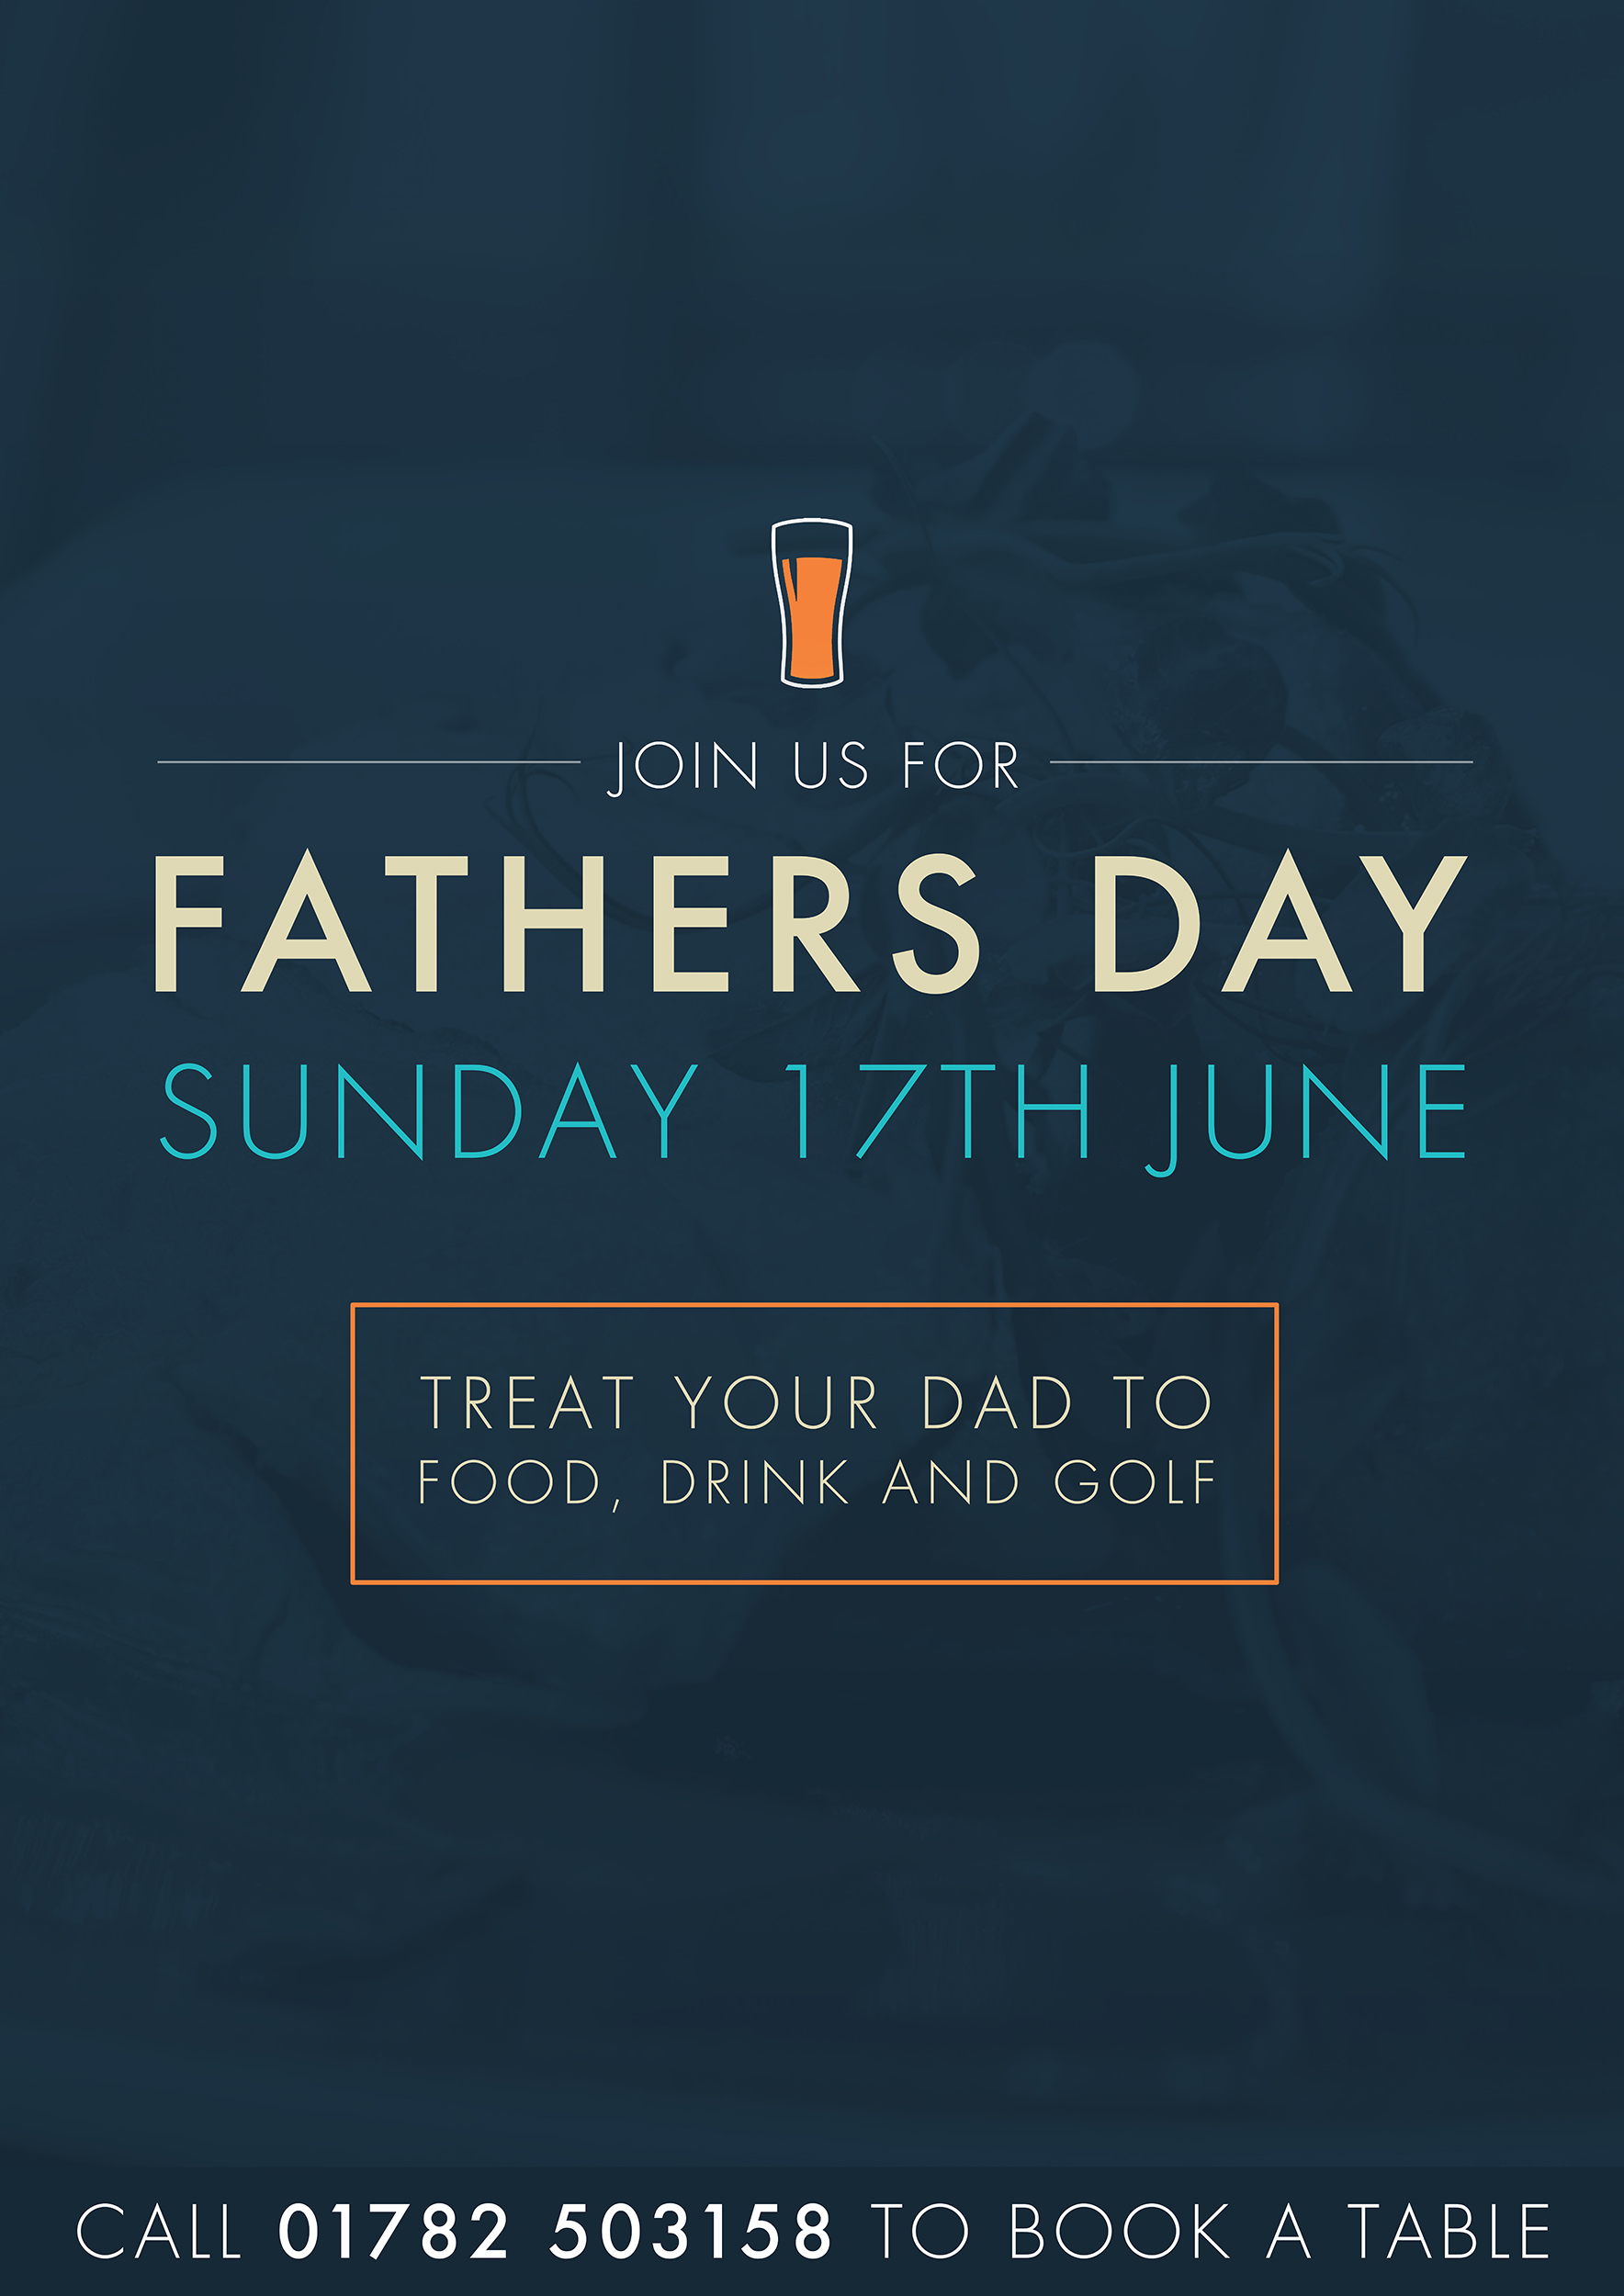 Come and join us for Father's Day at Greenway Hall this Sunday 17th June